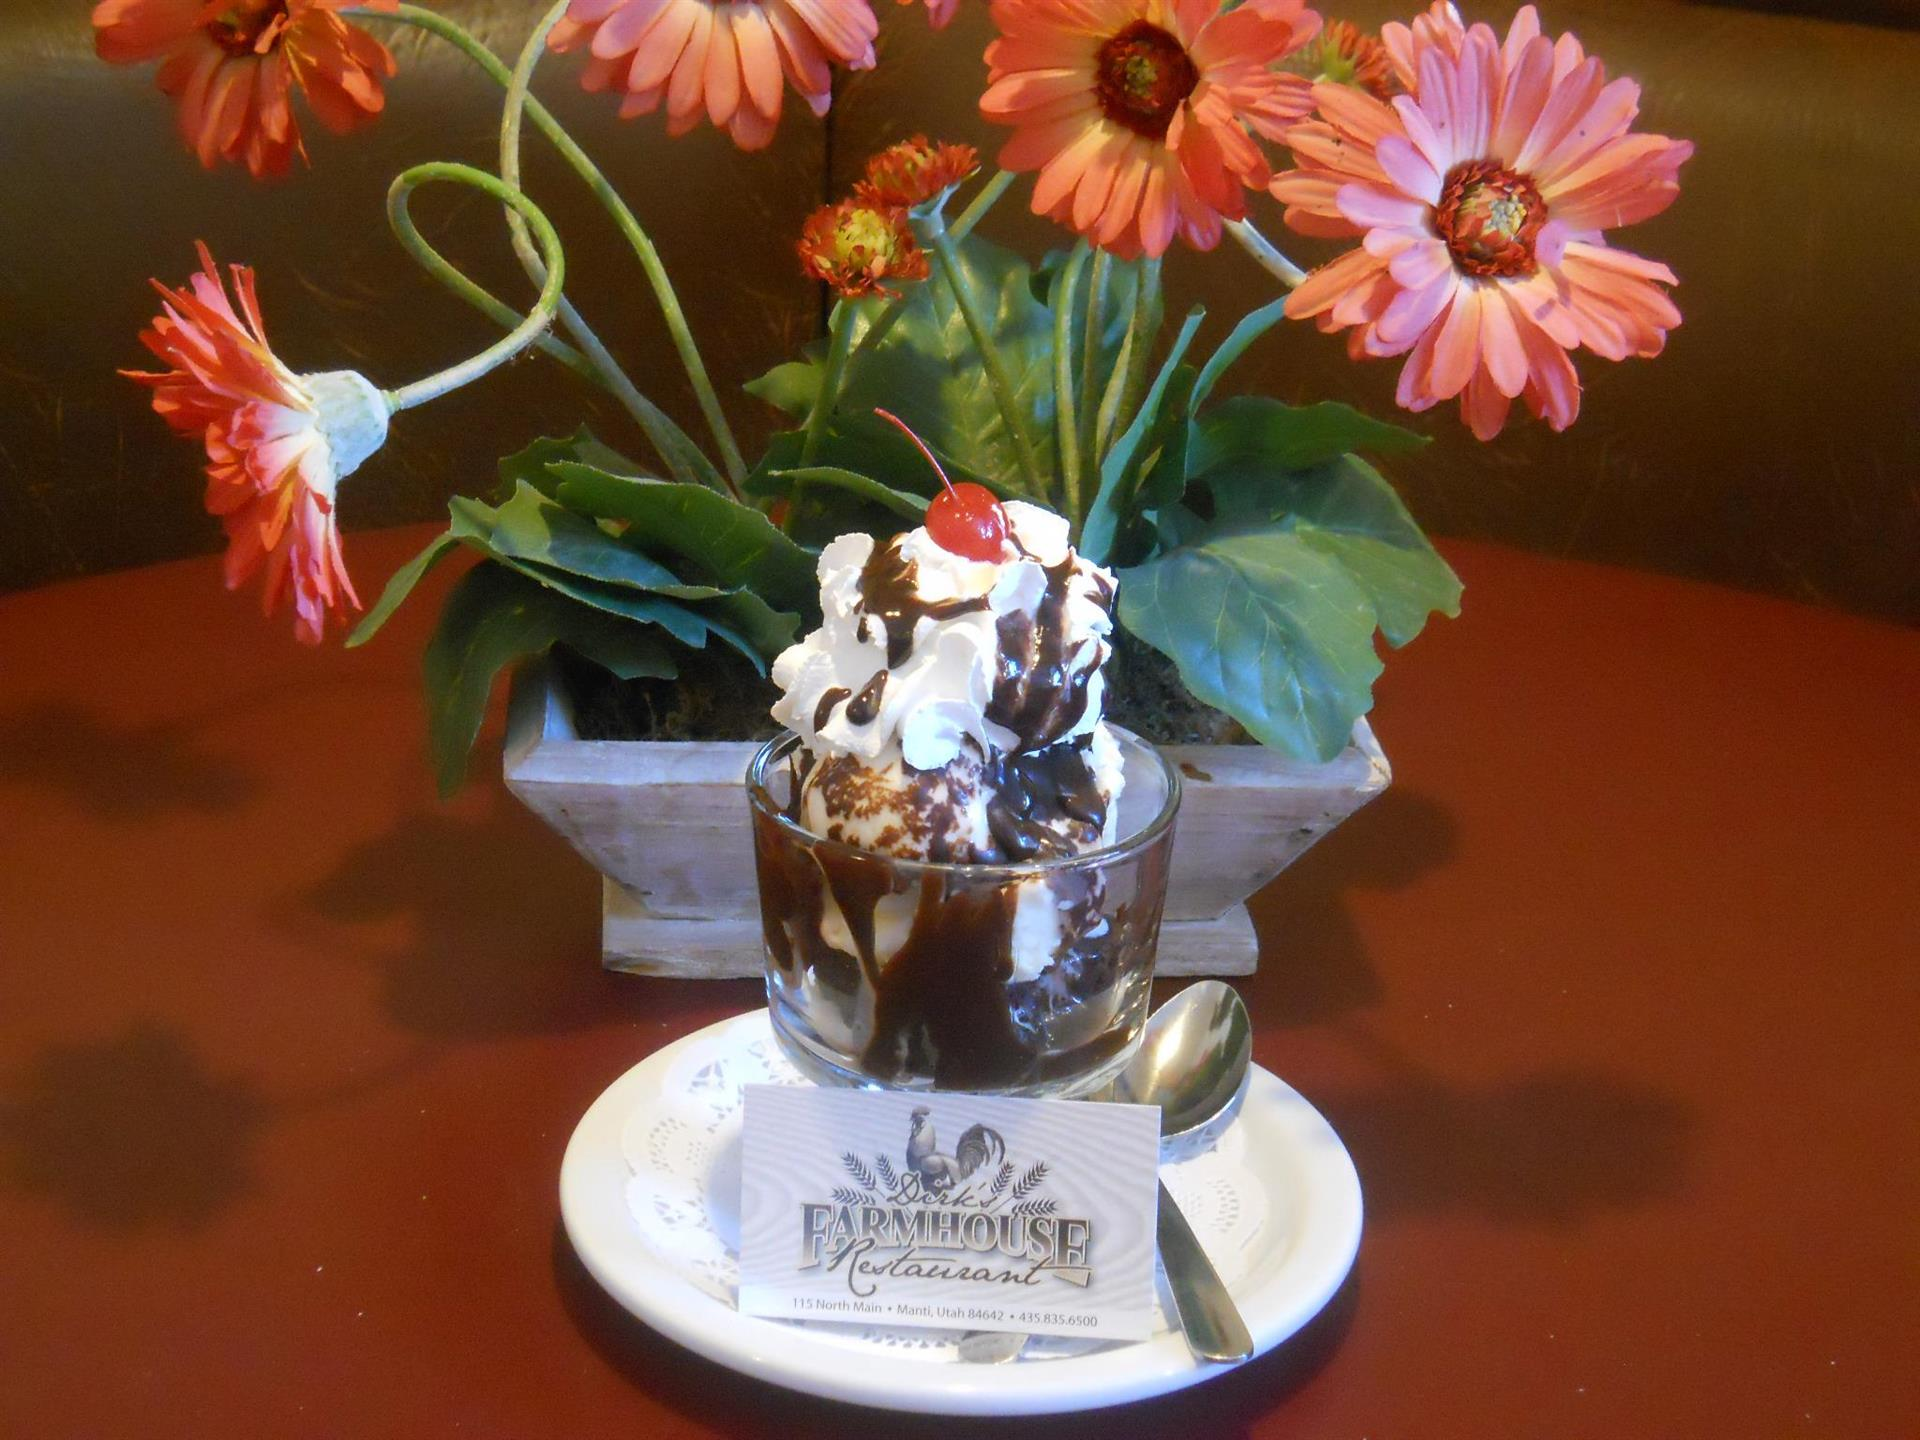 ice cream sundae in a cup with whipped cream, chocolate syrup and a cherry